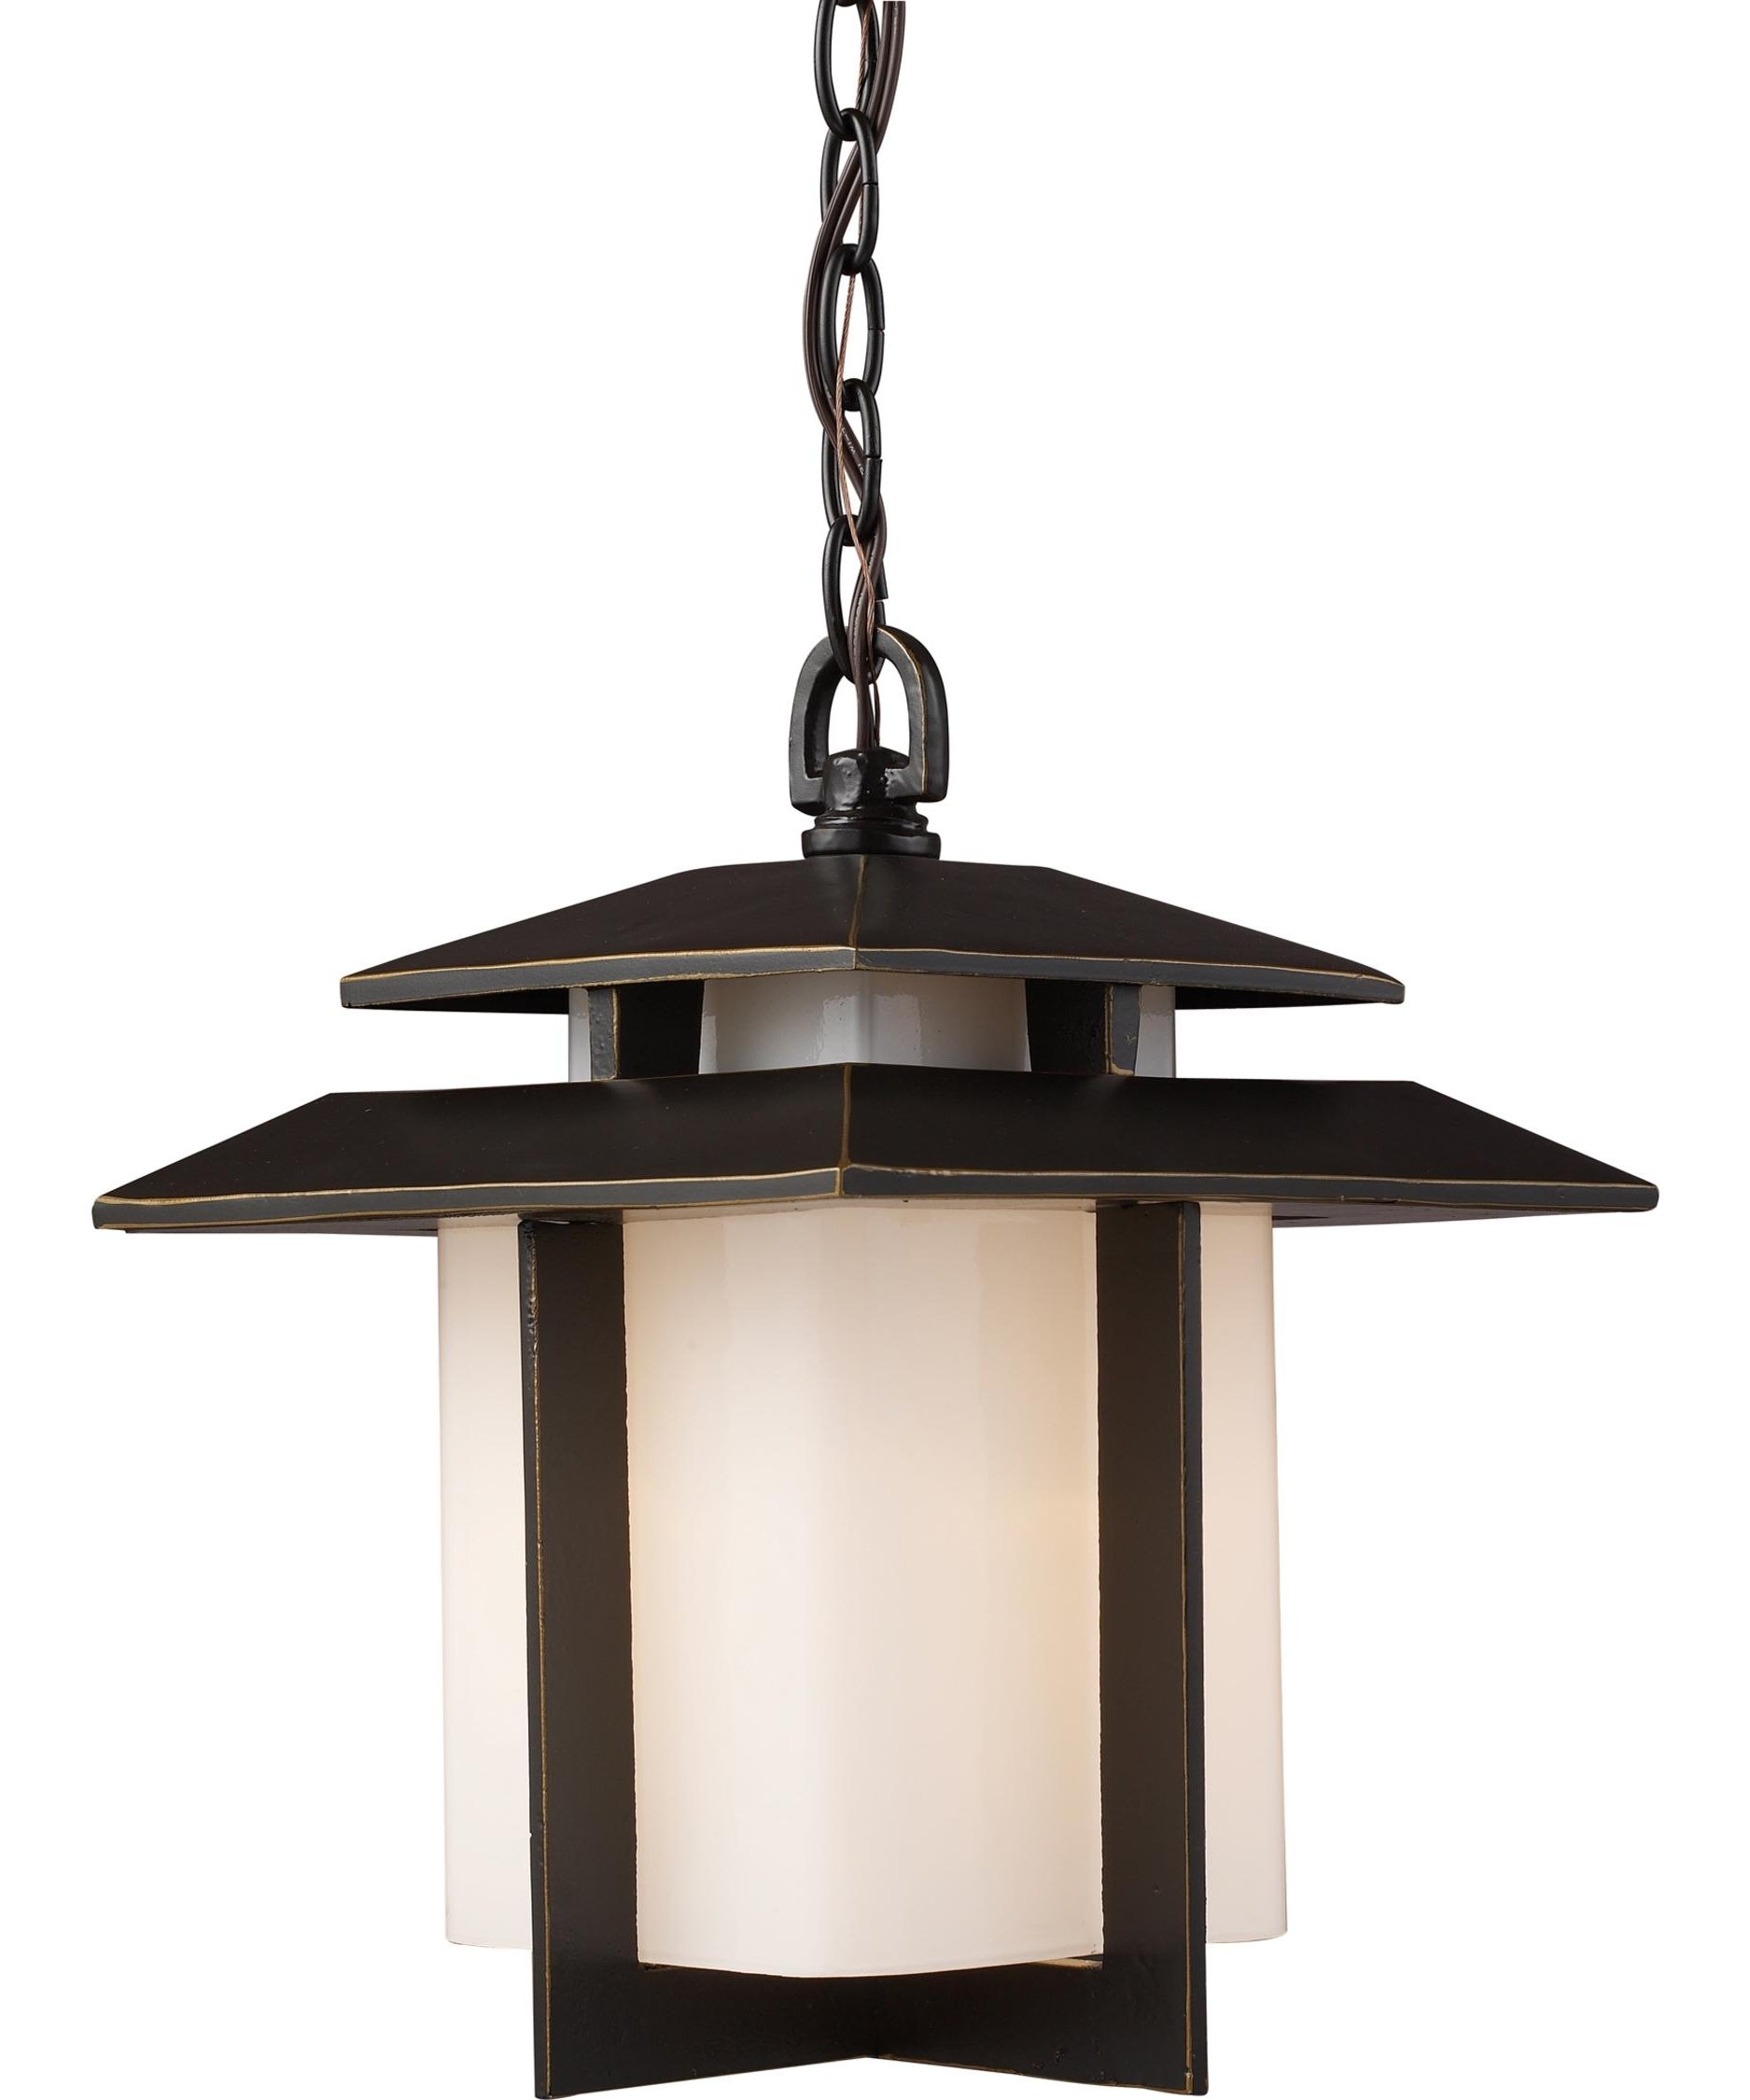 Widely Used Light : Outdoor Lighting Ideas Without Electricity Exterior Fixtures Within Modern Outdoor Hanging Lights (View 17 of 20)